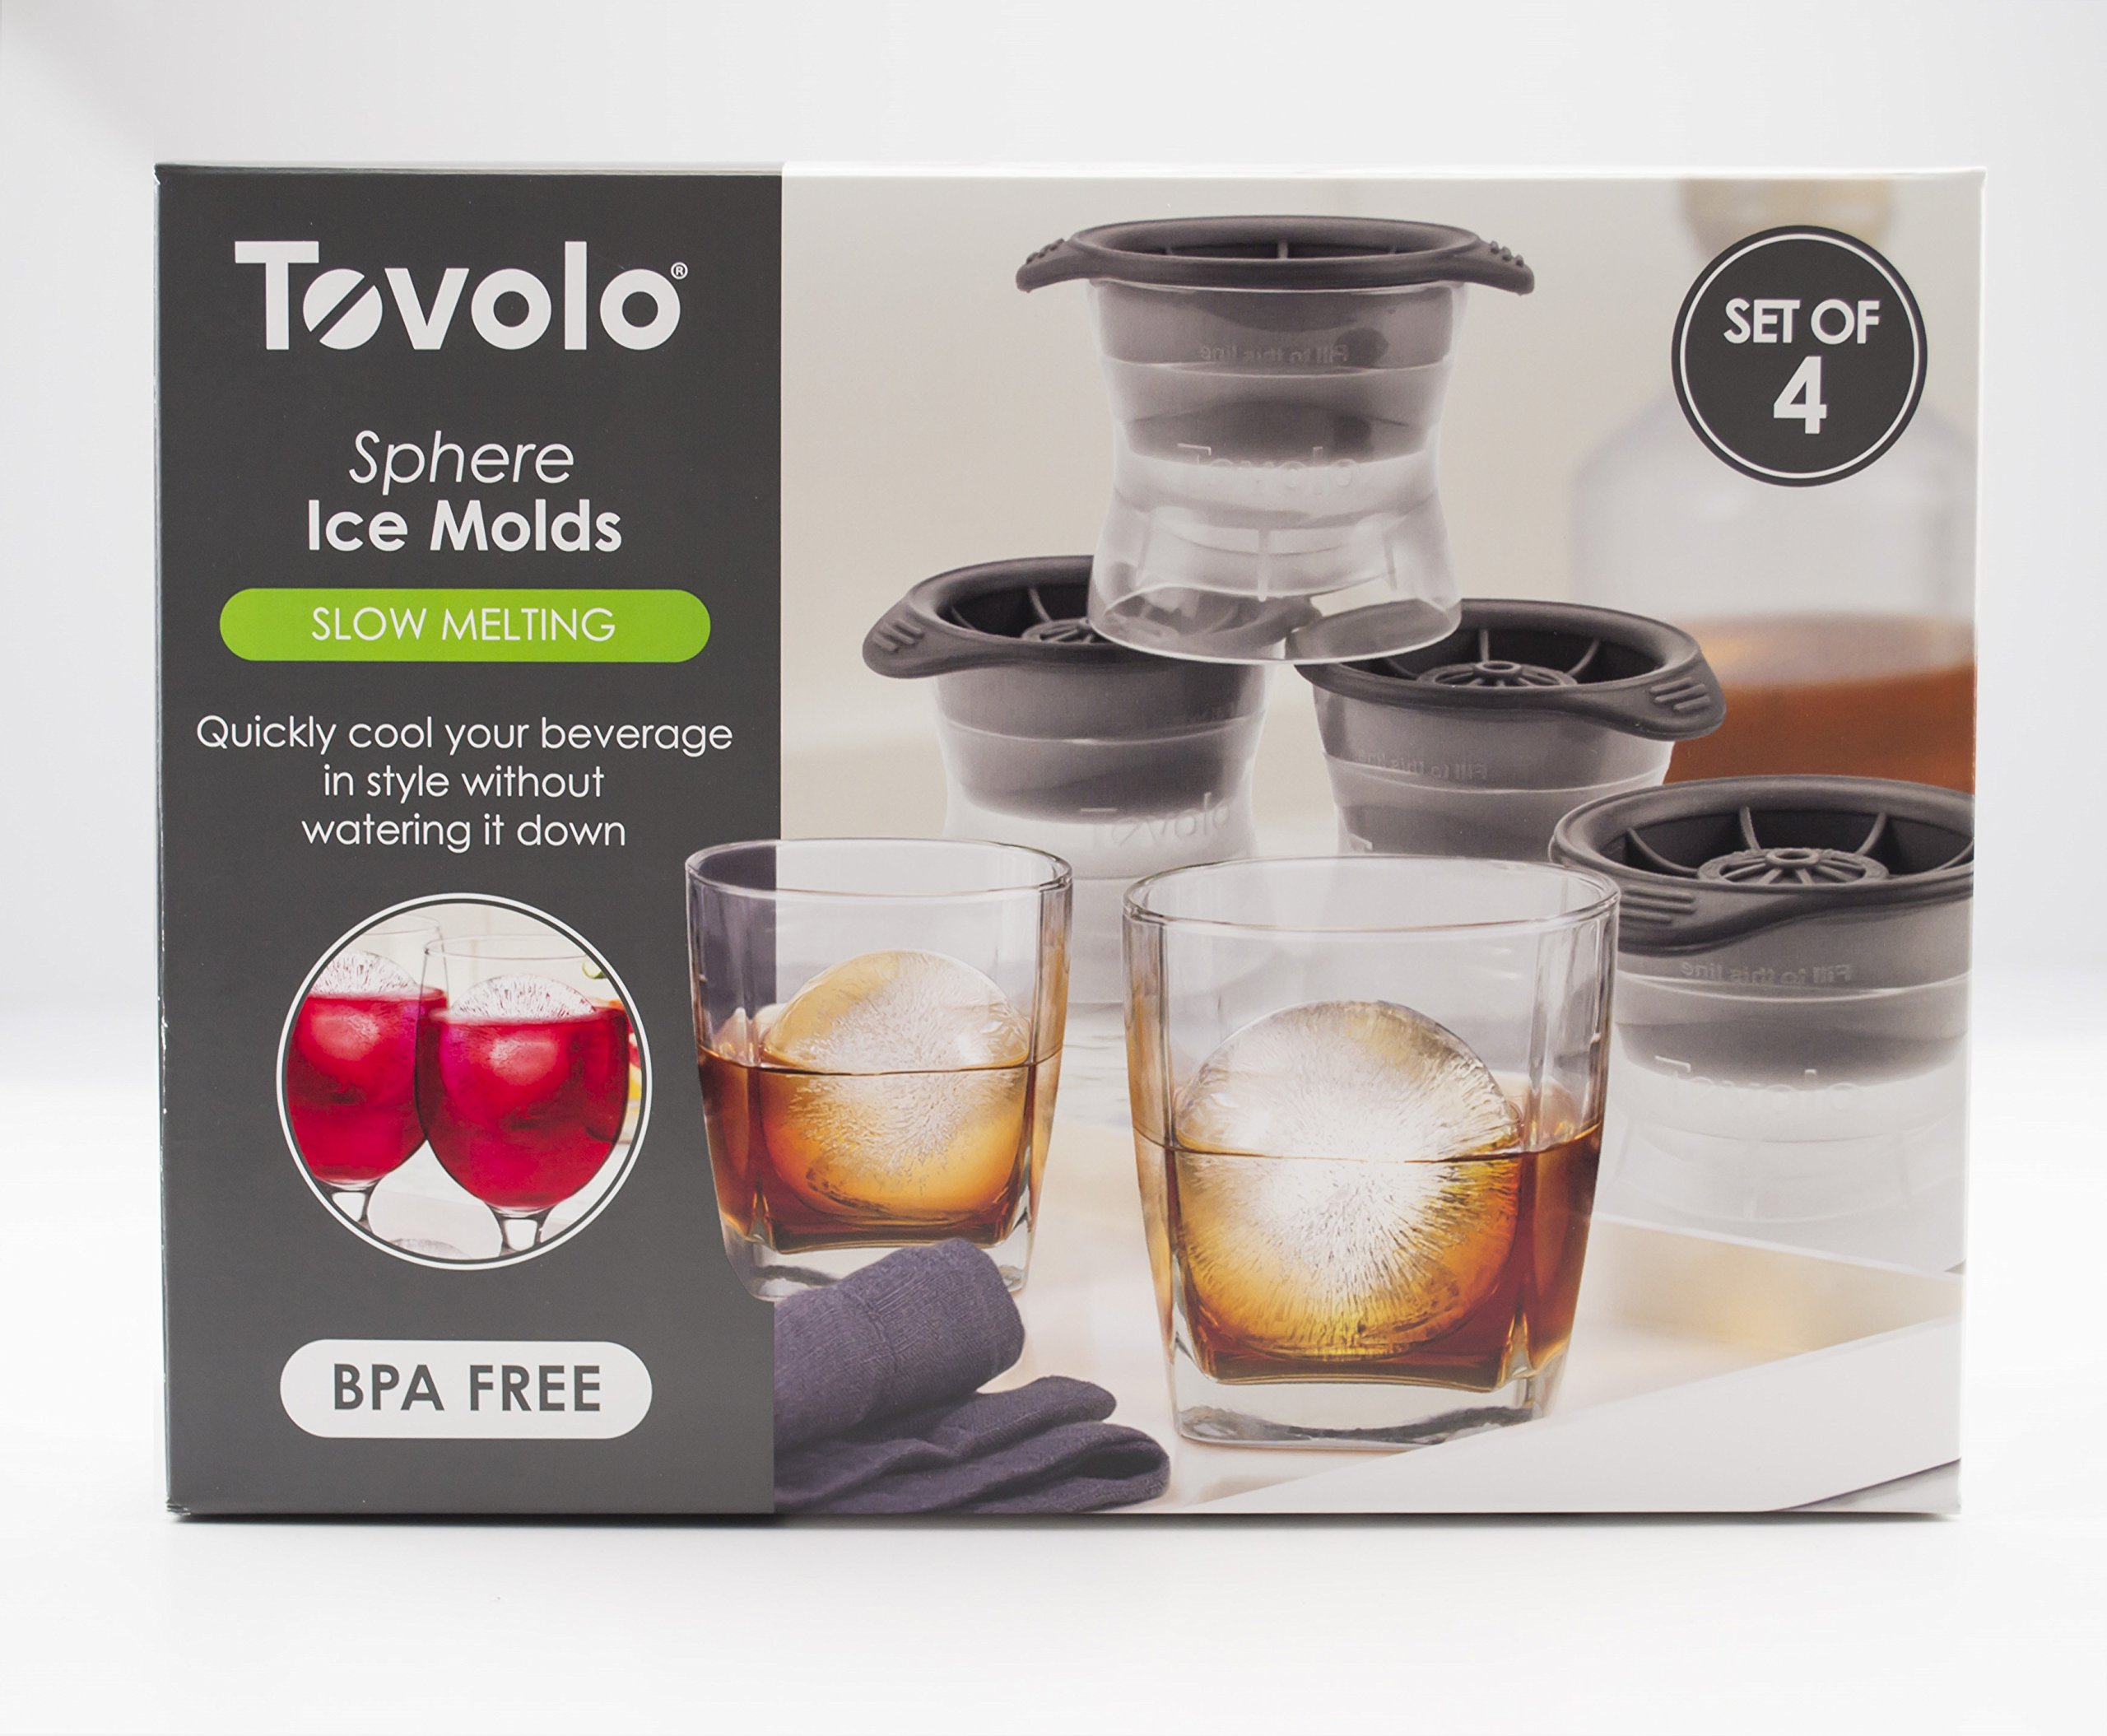 Tovolo Sphere Ice Molds - Set of 4 by Tovolo